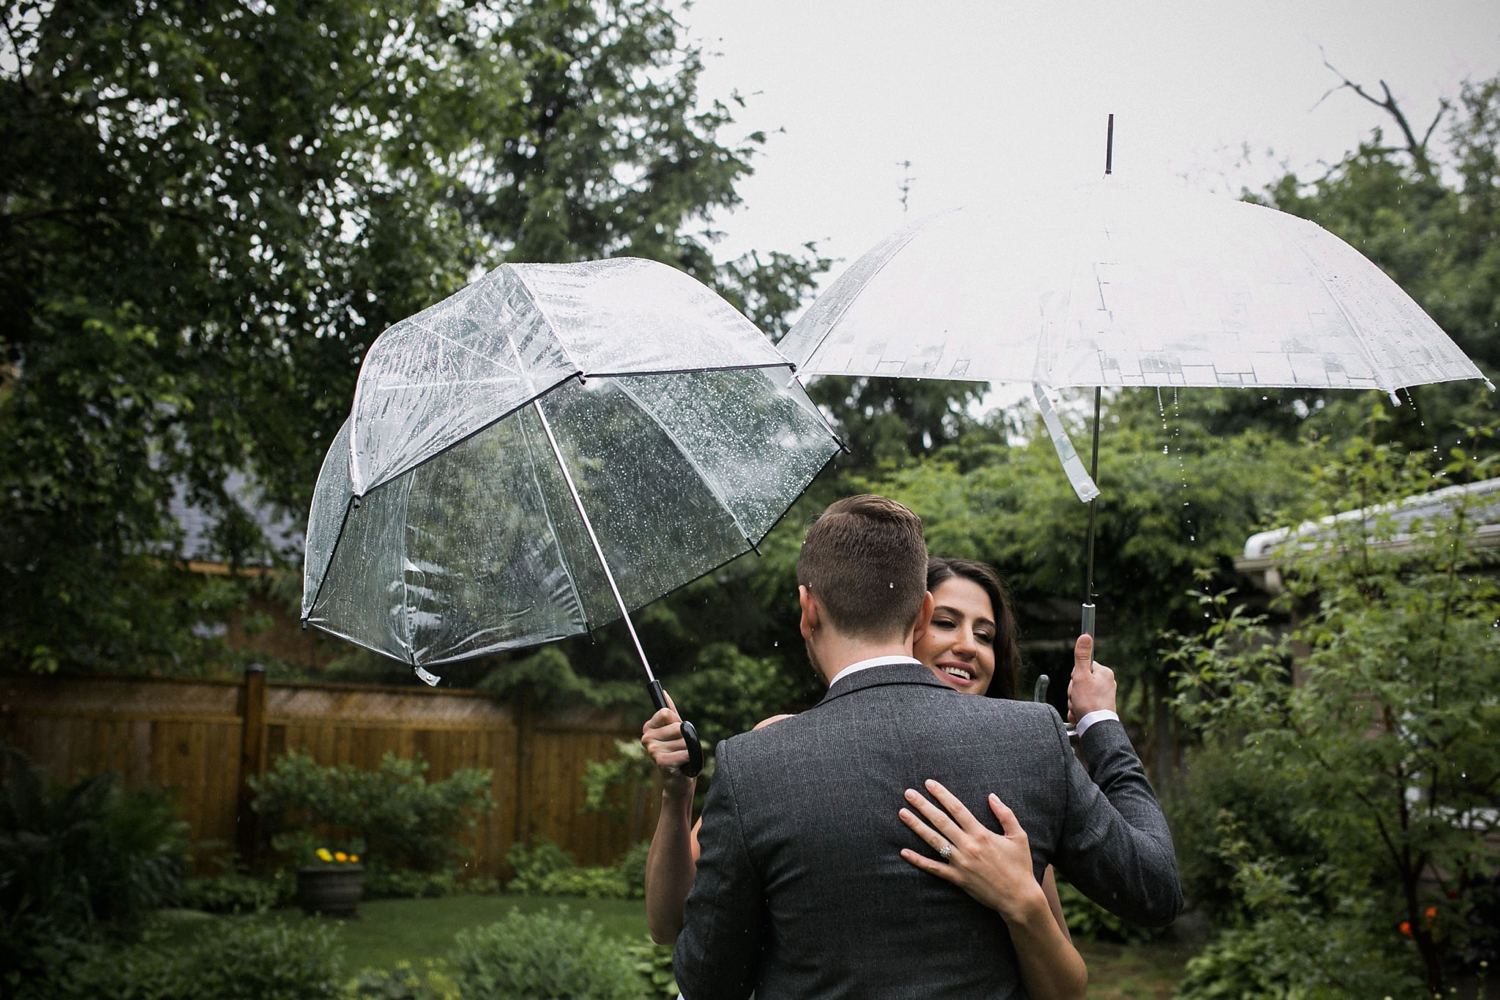 Kurtz-orchard-wedding-photos-danijelaweddings-rainy-romantic016.JPG